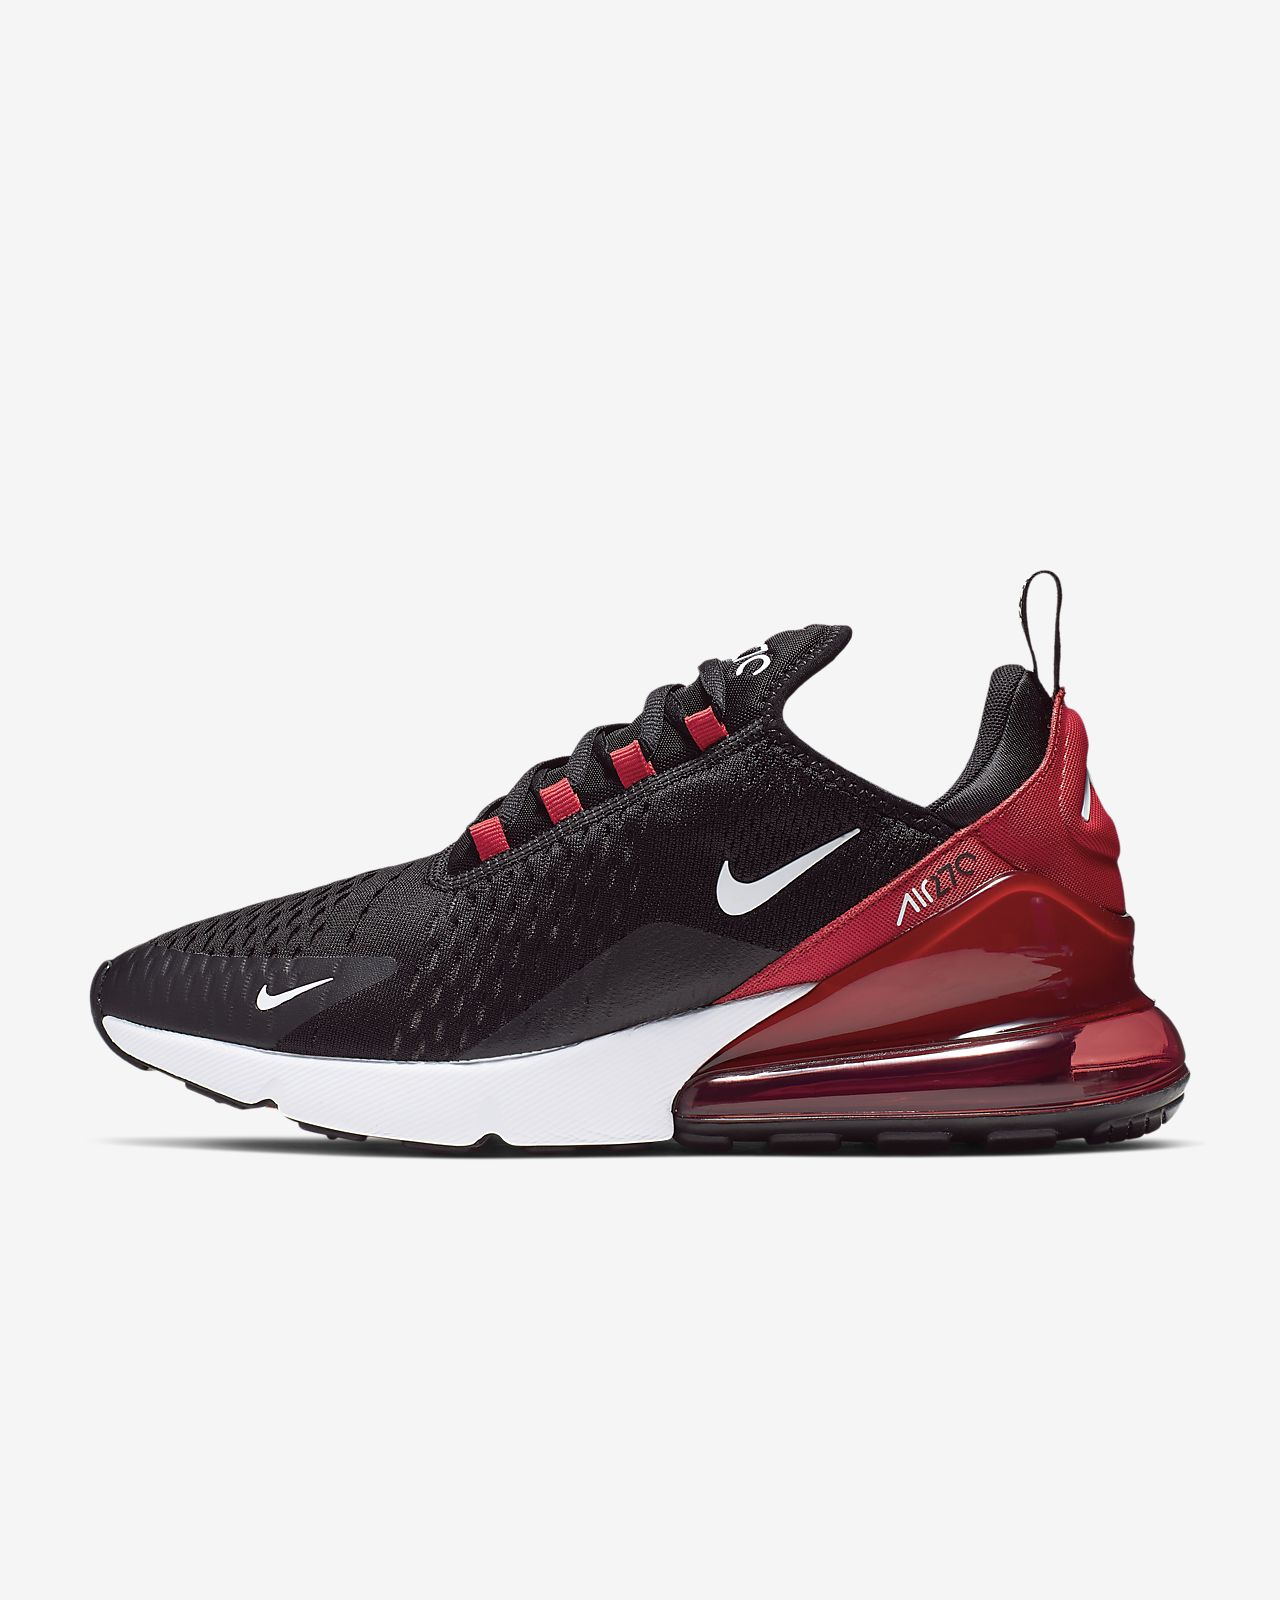 02ca15bc6d3c Nike Air Max 270 Men s Shoe. Nike.com GB